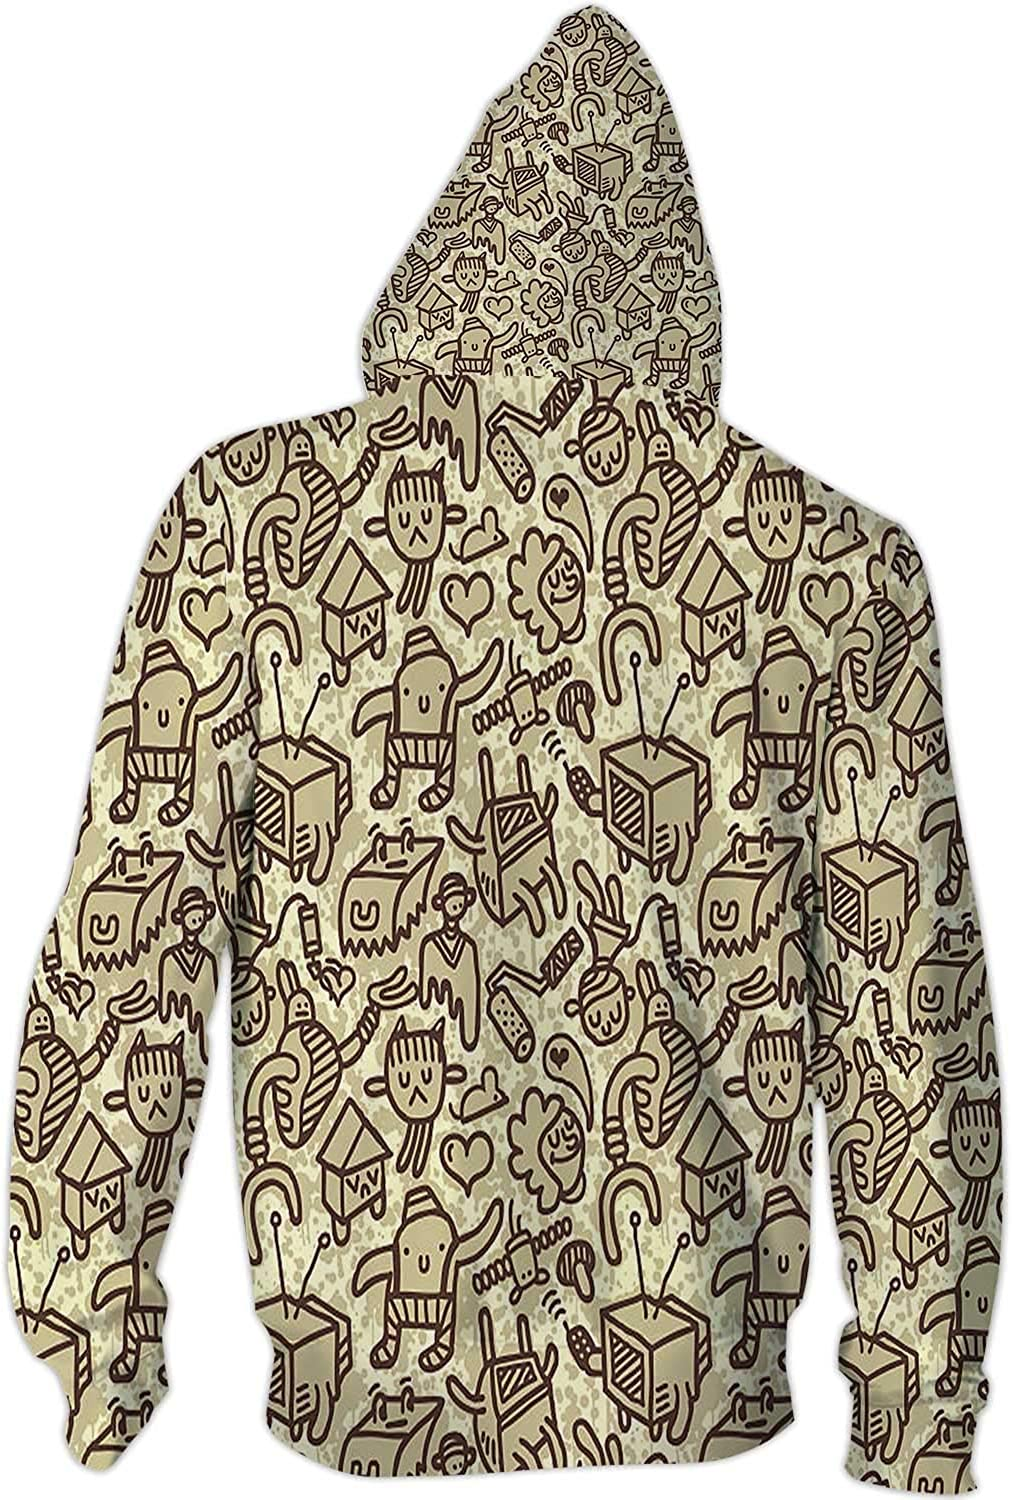 Illustration Street Art,Men//Womens Warm Outerwear Jackets and Hoodies Pattern S Seamless Doodle Background